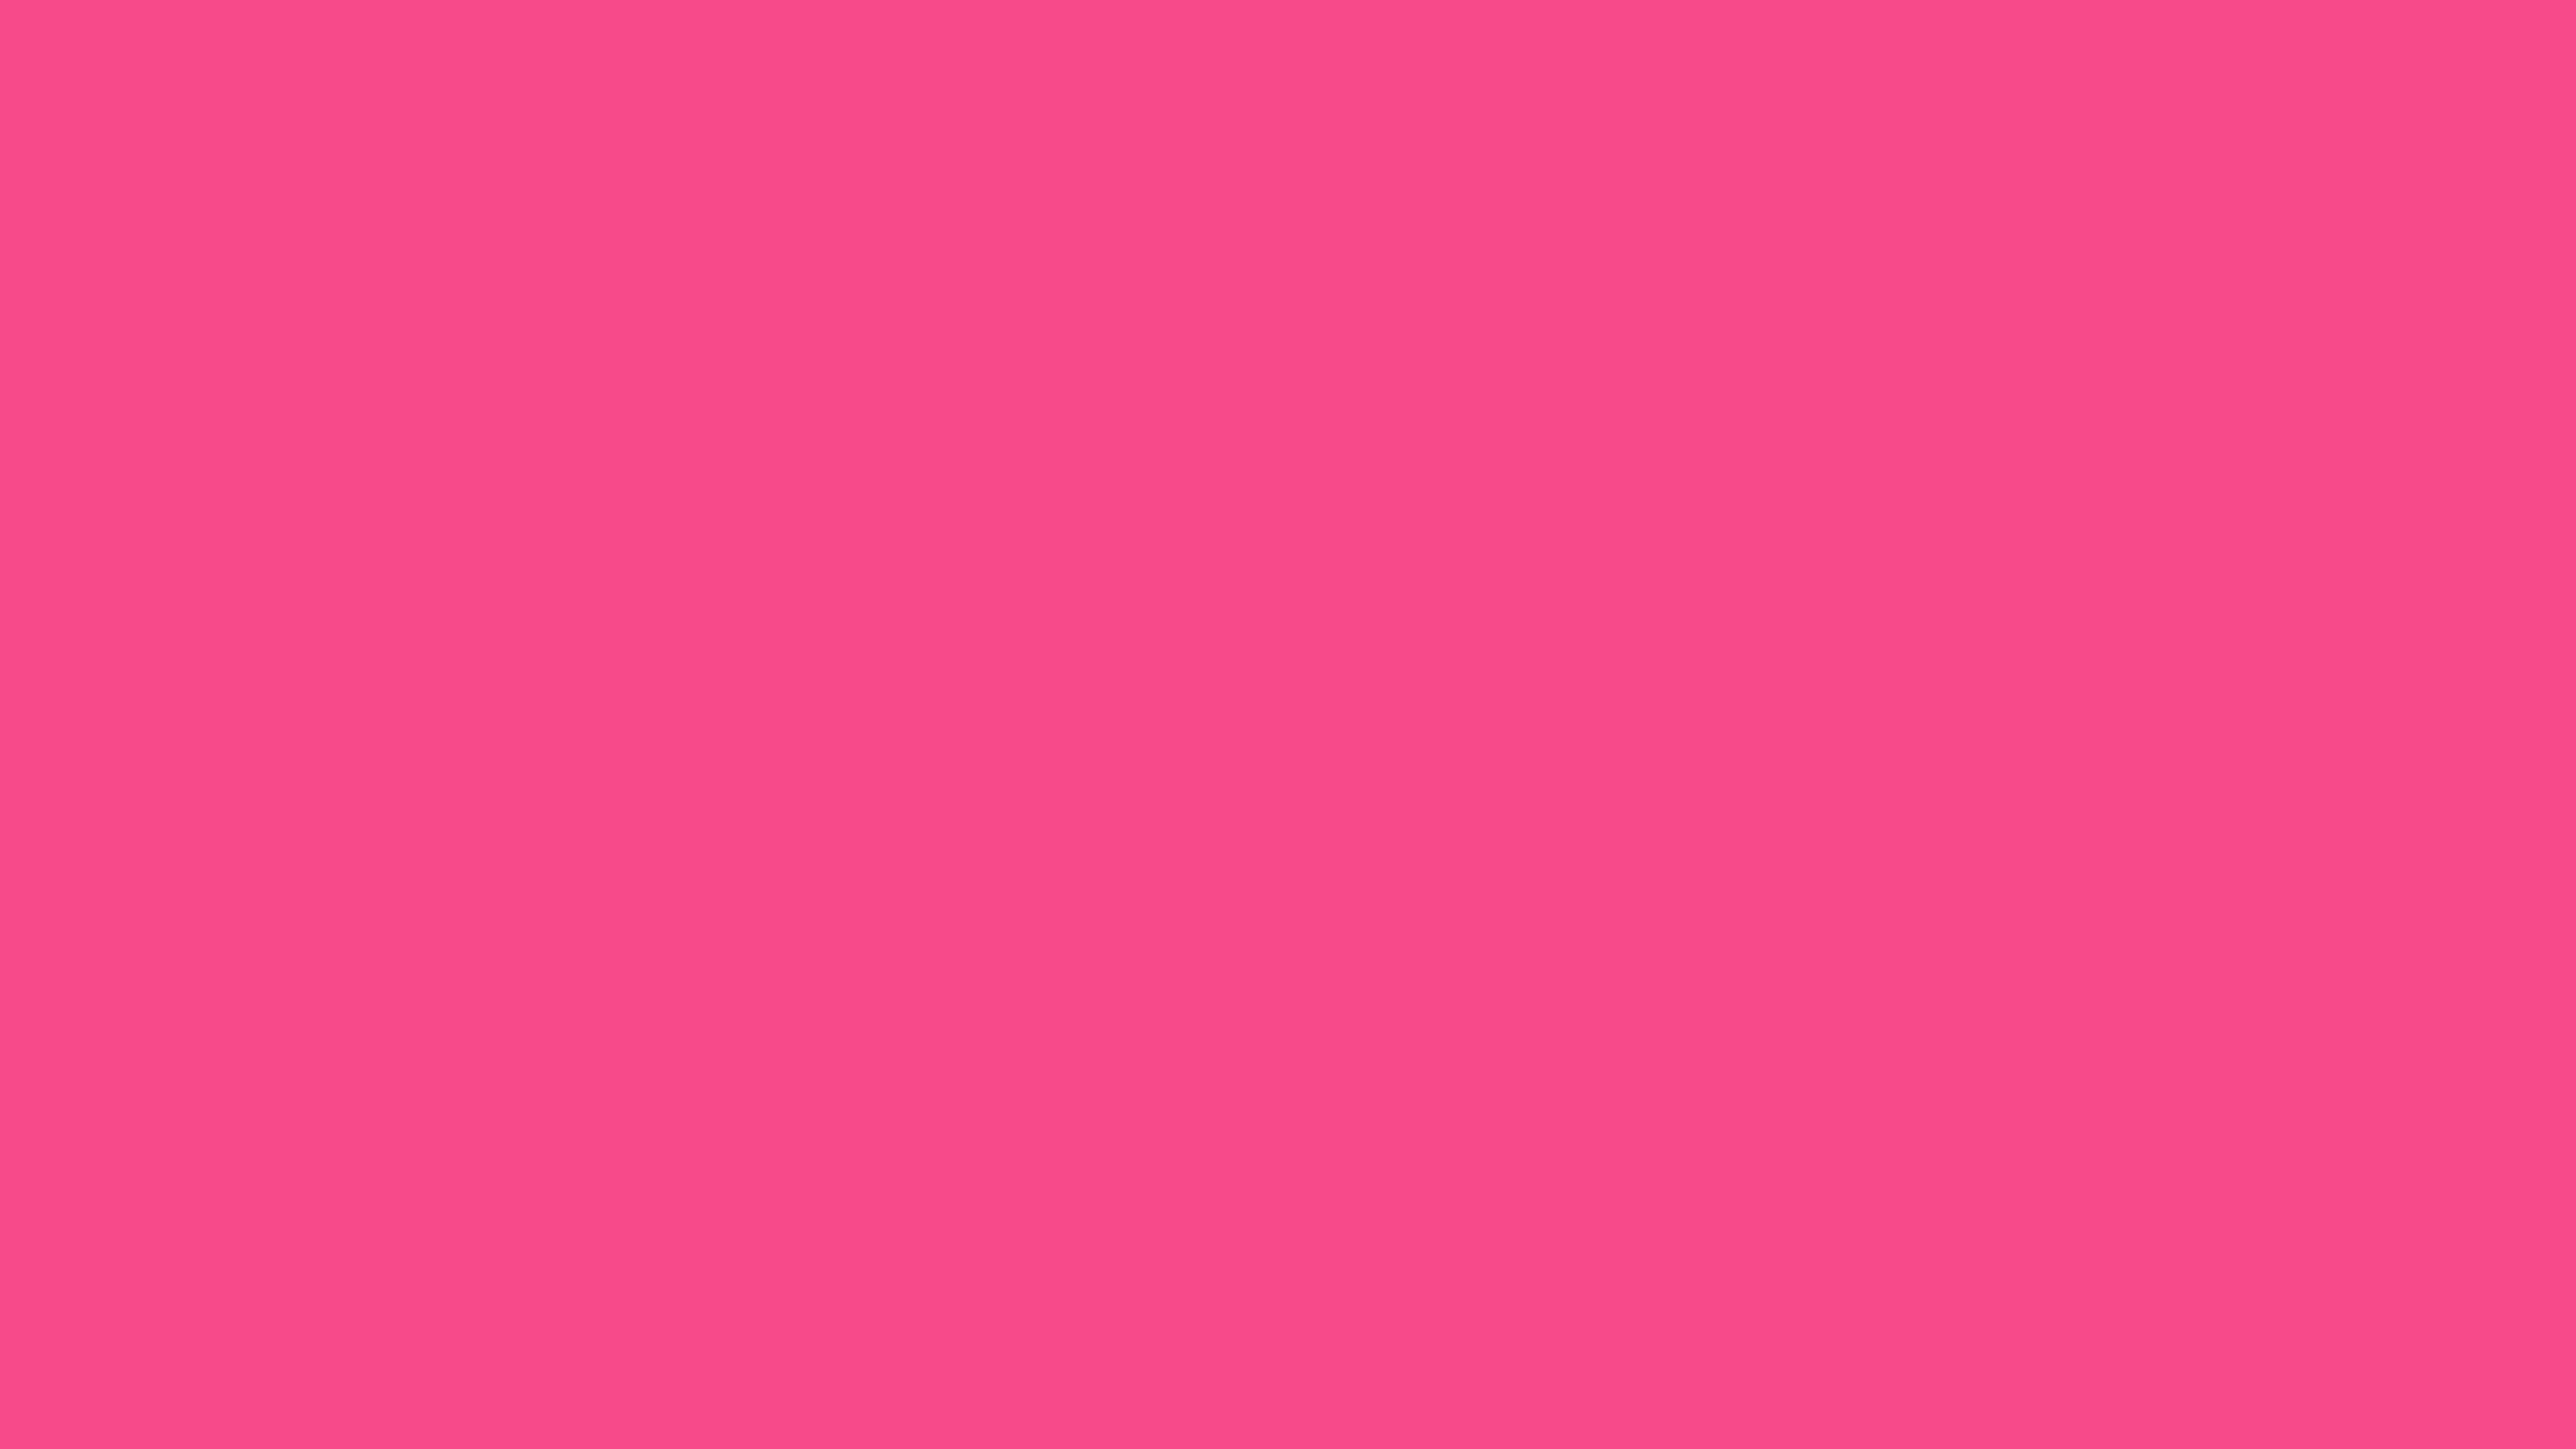 5120x2880 French Rose Solid Color Background